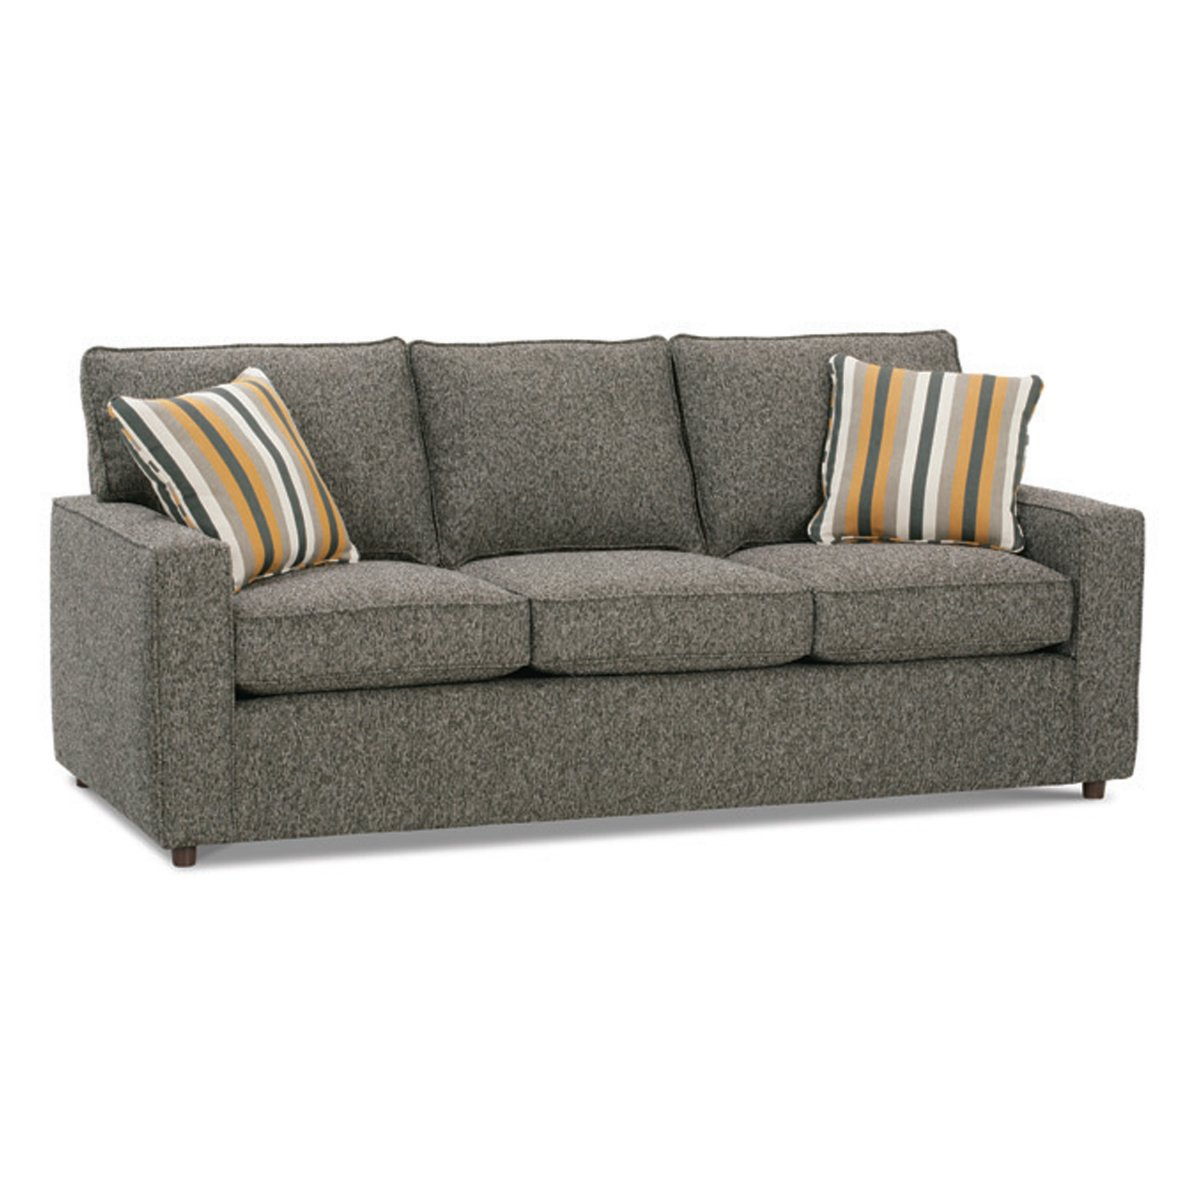 Epic Mini Sofa For Bedroom 18 Sofas and Couches Set with Mini Sofa For Bedroom